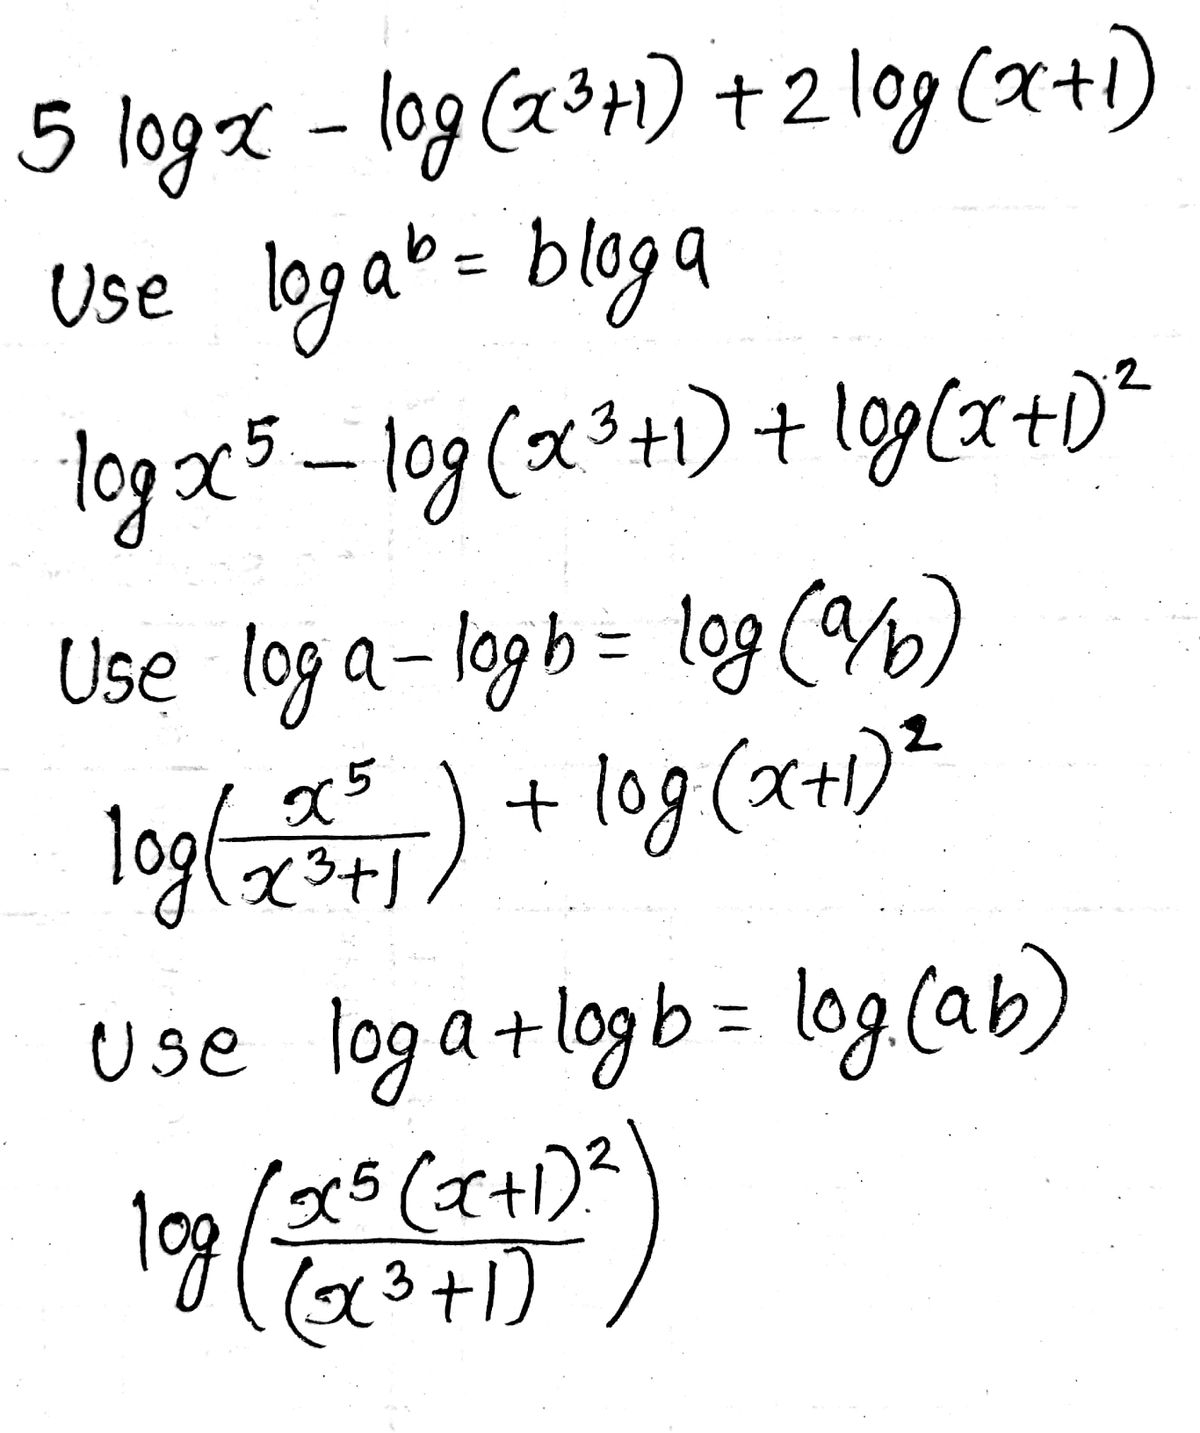 Answered 7 Use Properties Of Logarithms To